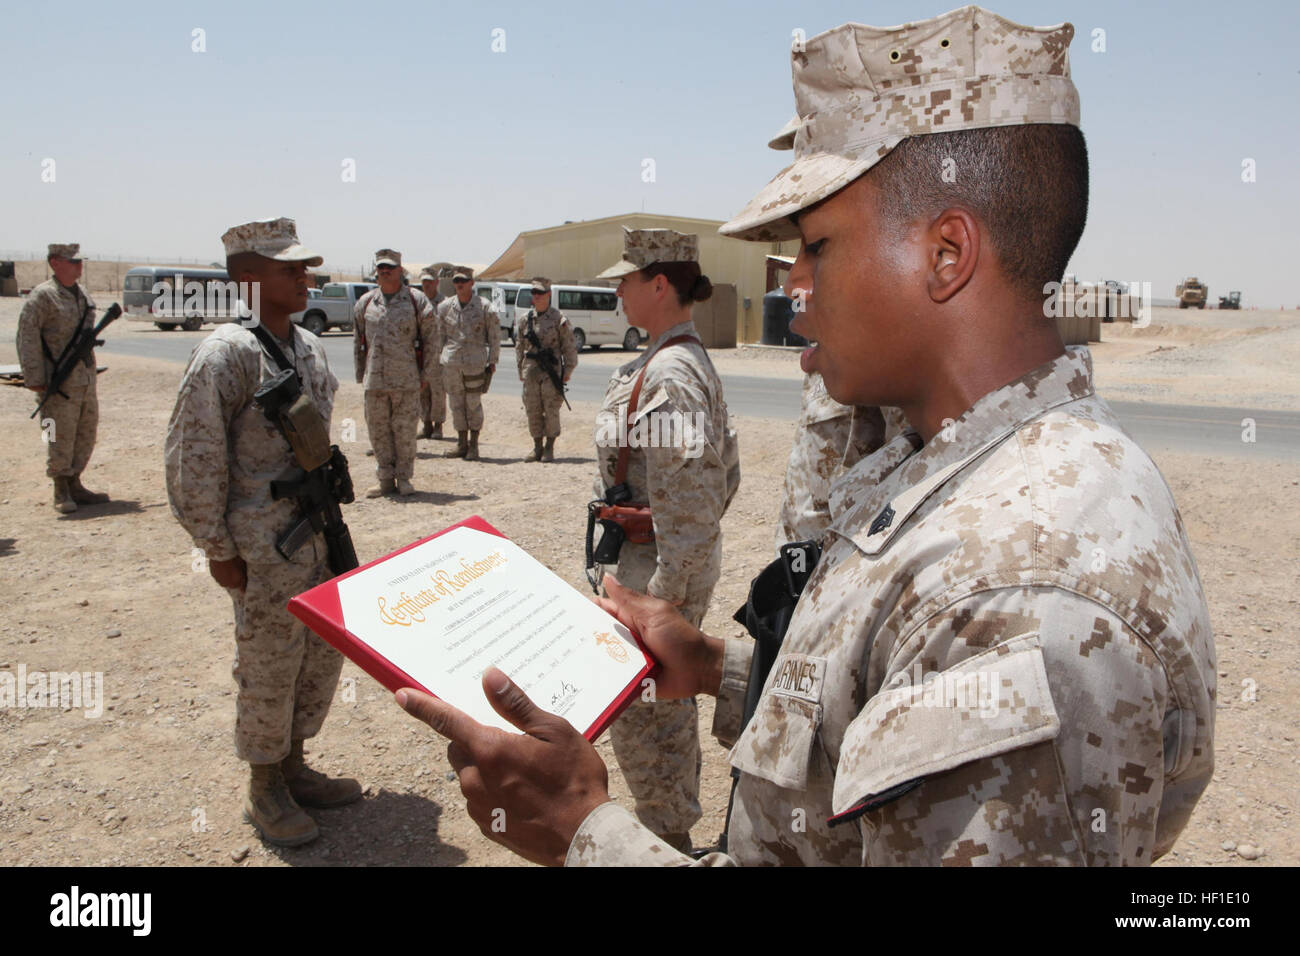 u s marine sgt ray c littles an administrative clerk nd stock photo u s marine sgt ray c littles an administrative clerk 2nd marine aircraft wing forward reads a promotion warrant during a